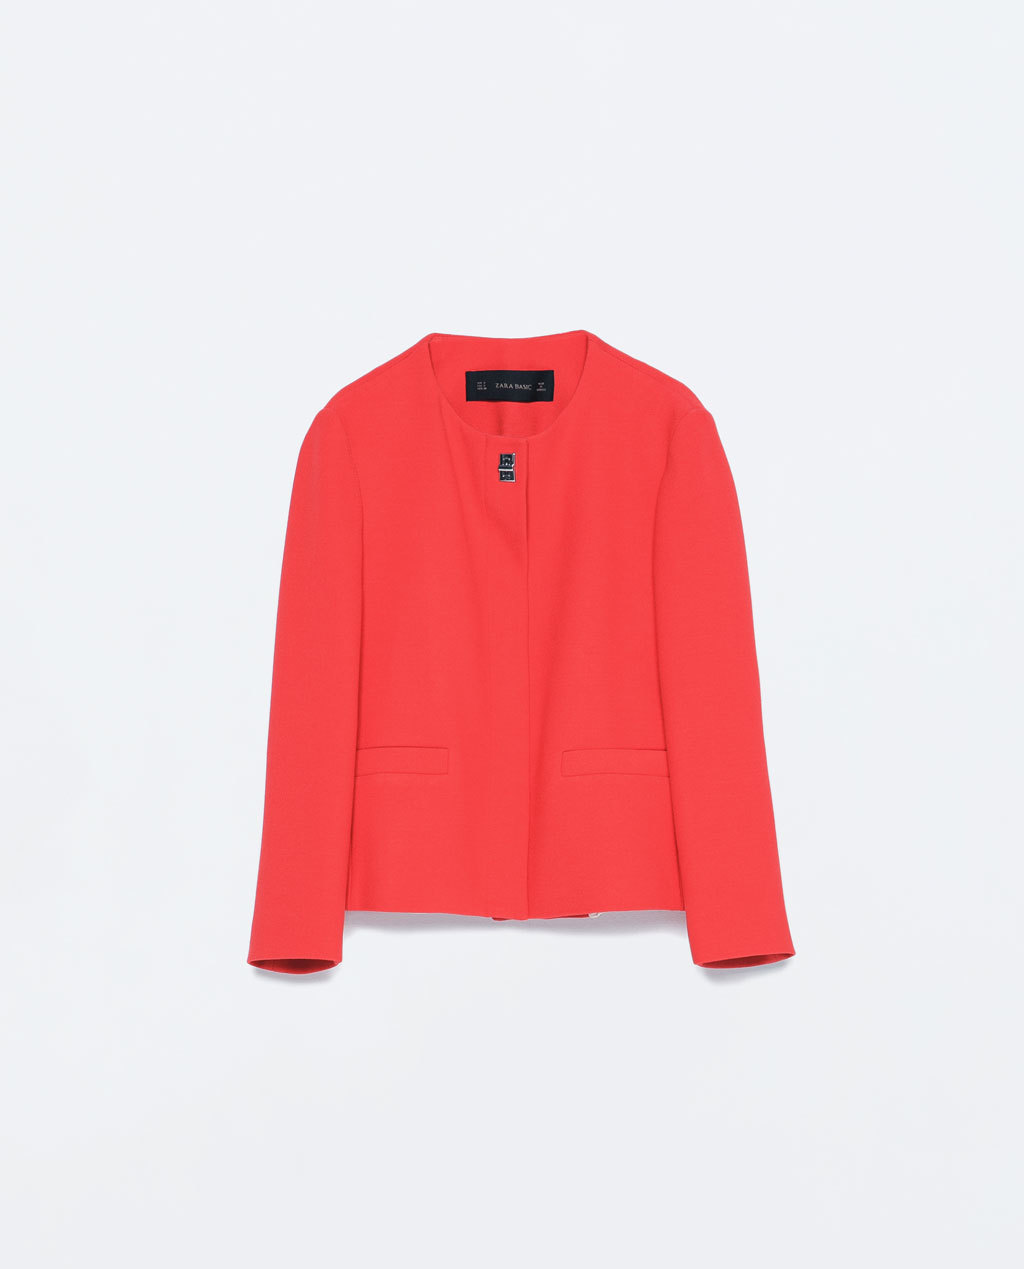 Short Crepe Jacket - pattern: plain; collar: round collar/collarless; style: boxy; predominant colour: true red; occasions: casual, evening, creative work; length: standard; fit: straight cut (boxy); fibres: polyester/polyamide - mix; sleeve length: long sleeve; sleeve style: standard; texture group: crepes; collar break: high; pattern type: fabric; season: s/s 2015